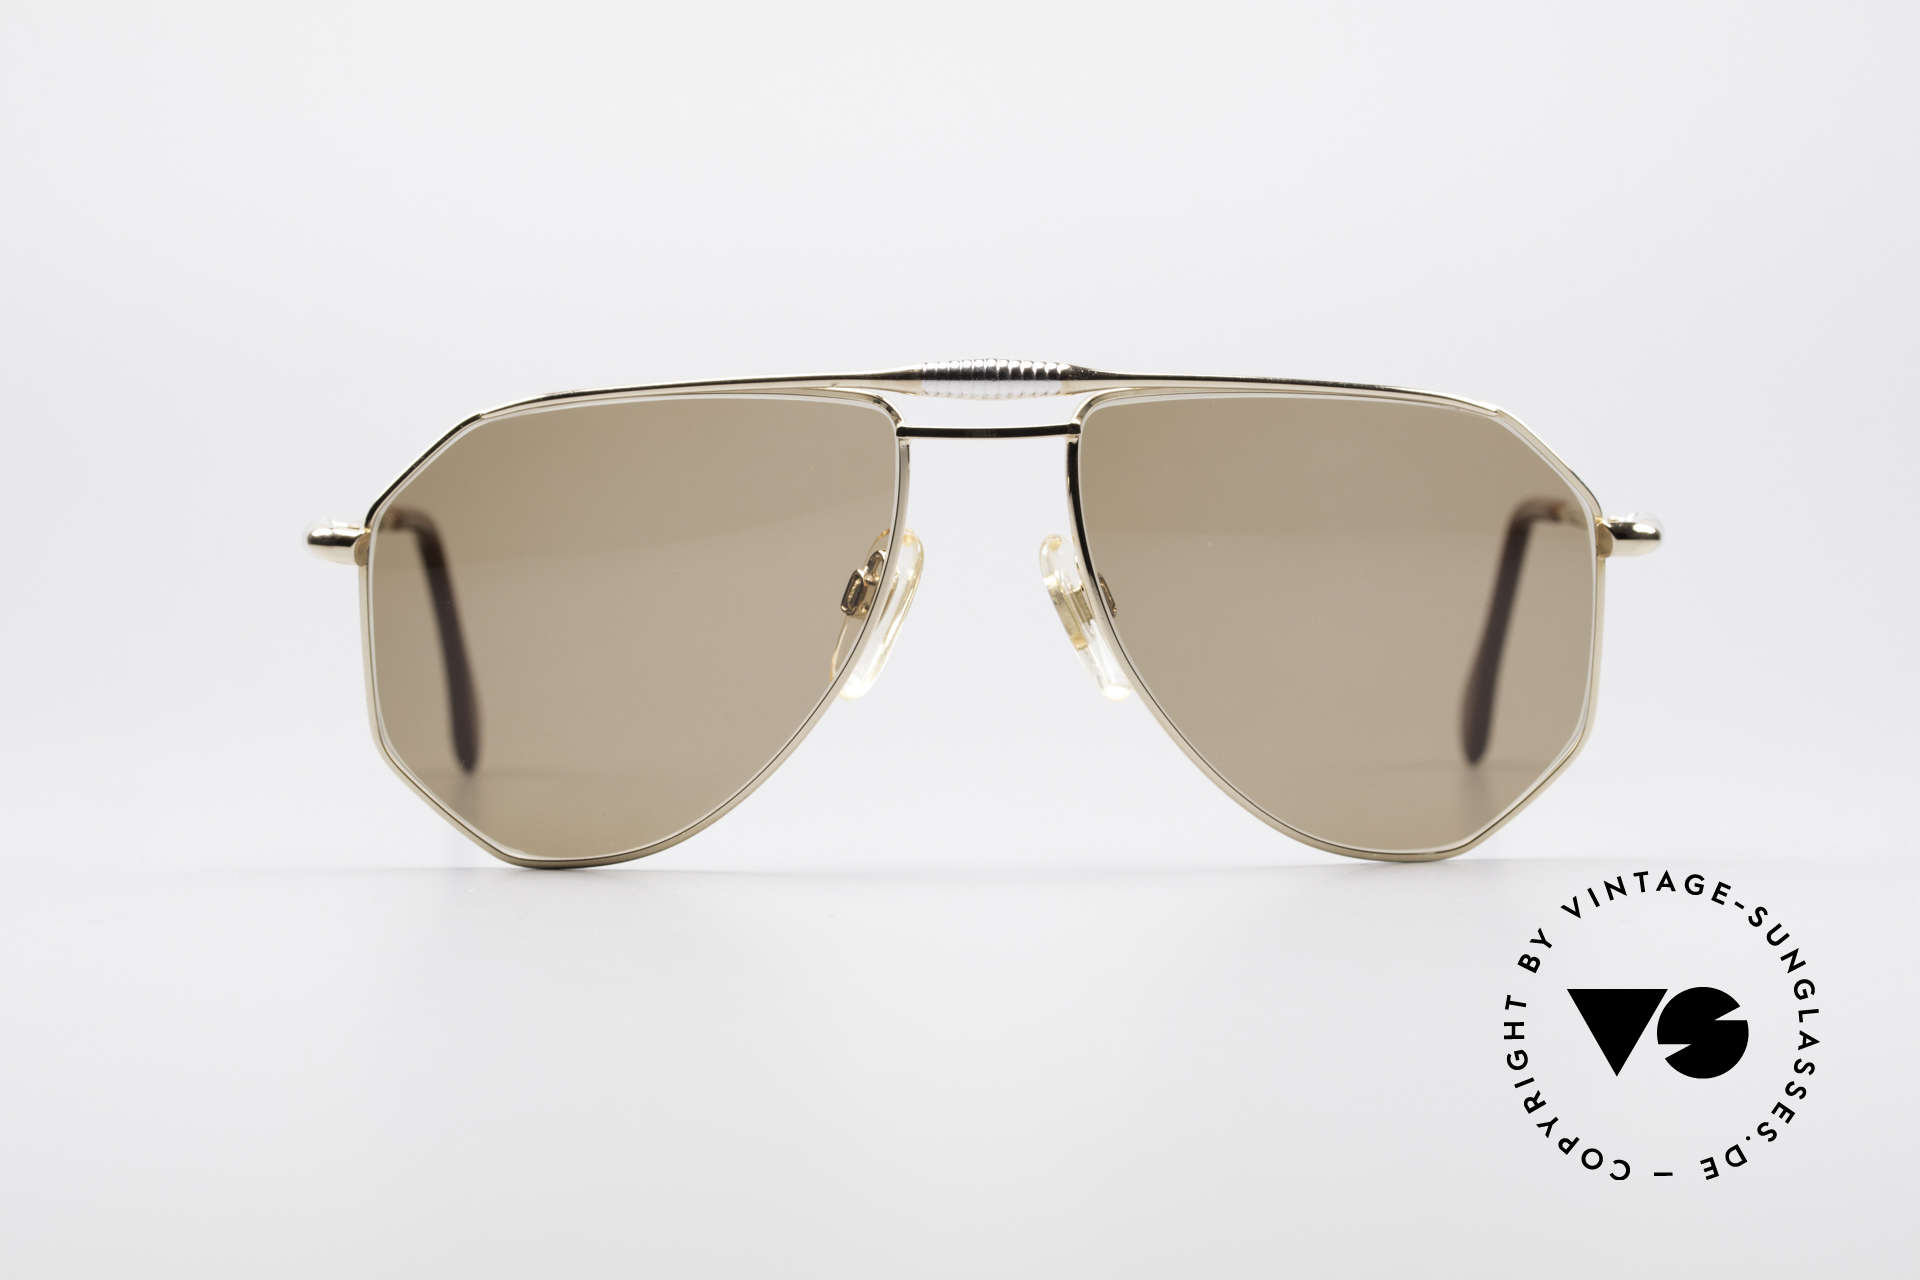 Zollitsch Cadre 120 Medium 80's Men's Sunglasses, distinctive frame for men (outstanding quality, Germany), Made for Men